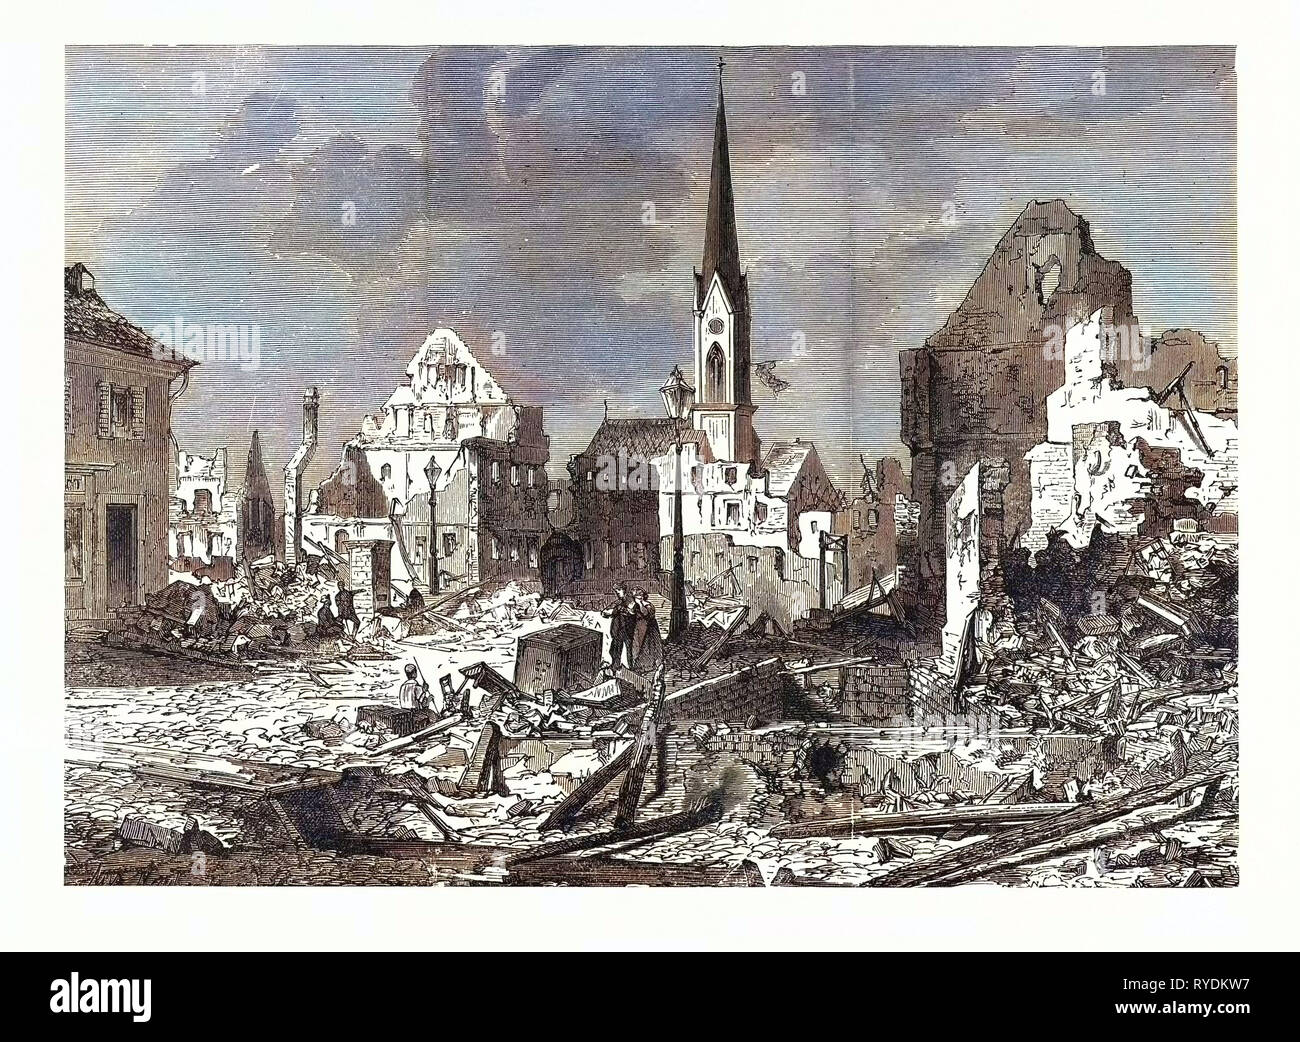 Franco-Prussian War: The Devastation in the Main Street of Kehl, an Open City by, French Batteries Strasbourg. The Best Evidence of How the French Respected International Law, and Their Protests against the Bombing of the City of Paris - Stock Image